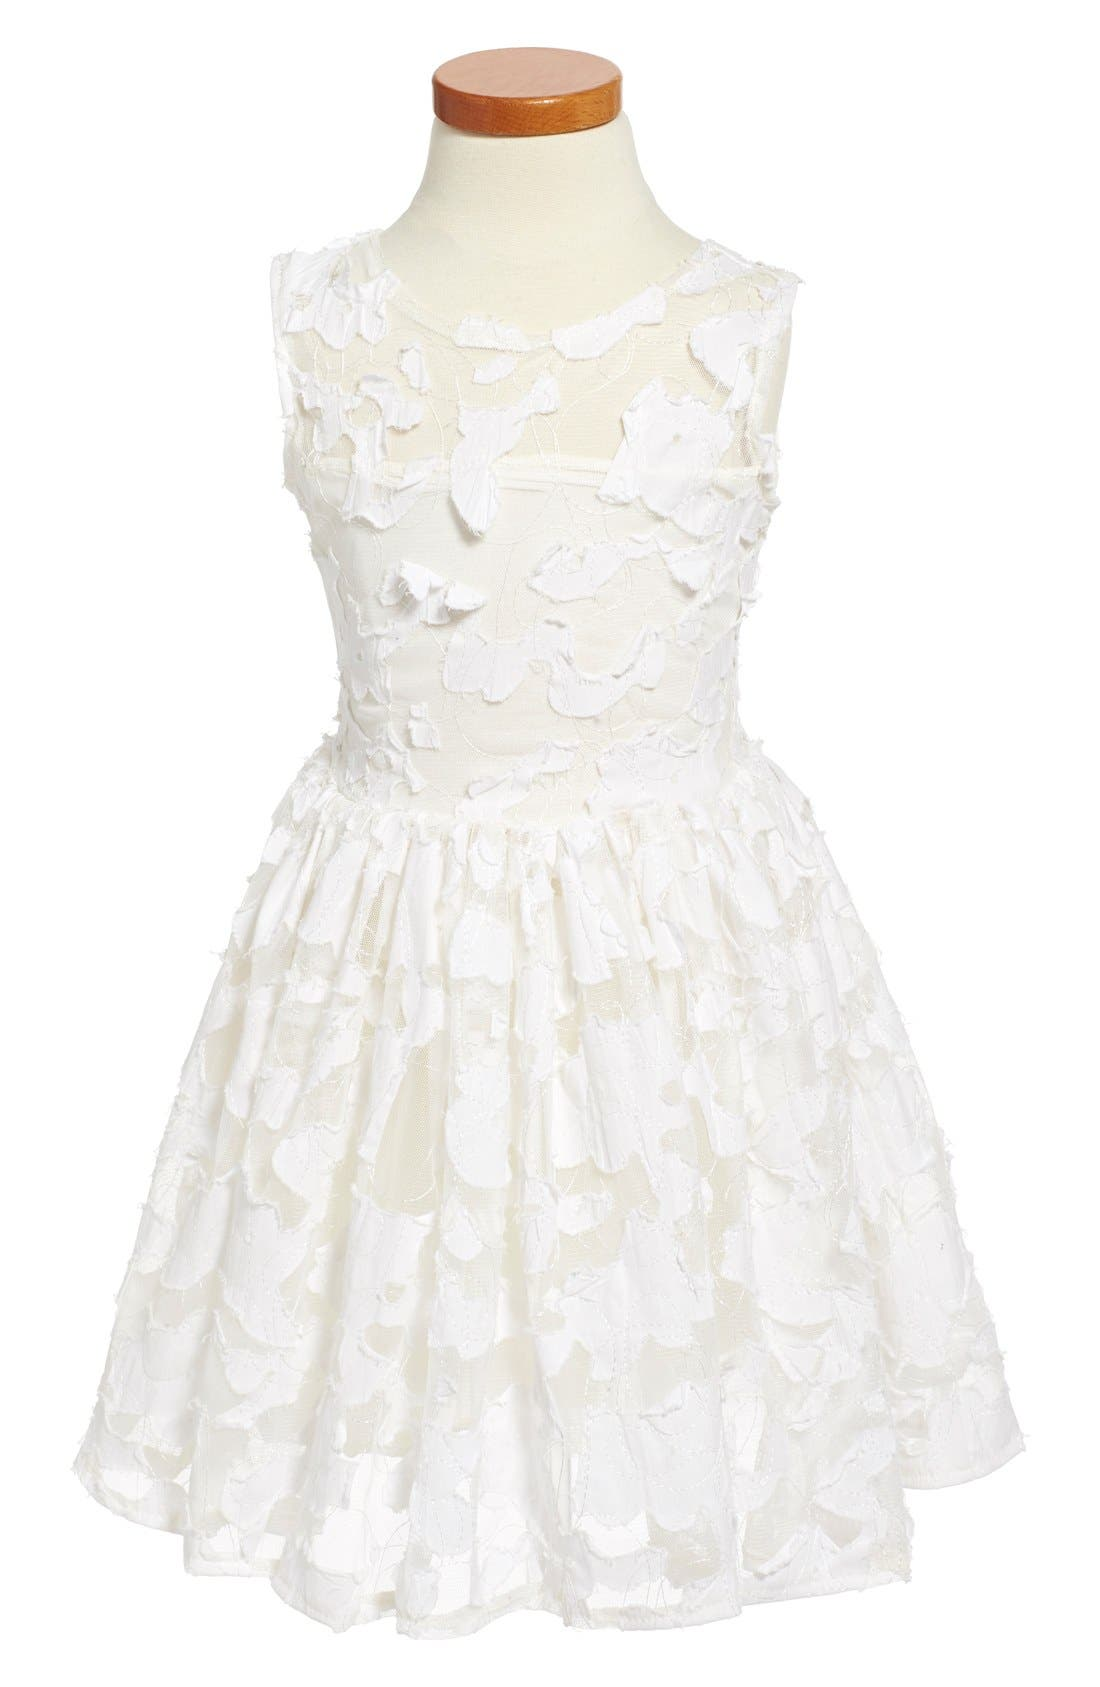 'Pretty in Ivory' Party Dress,                         Main,                         color,